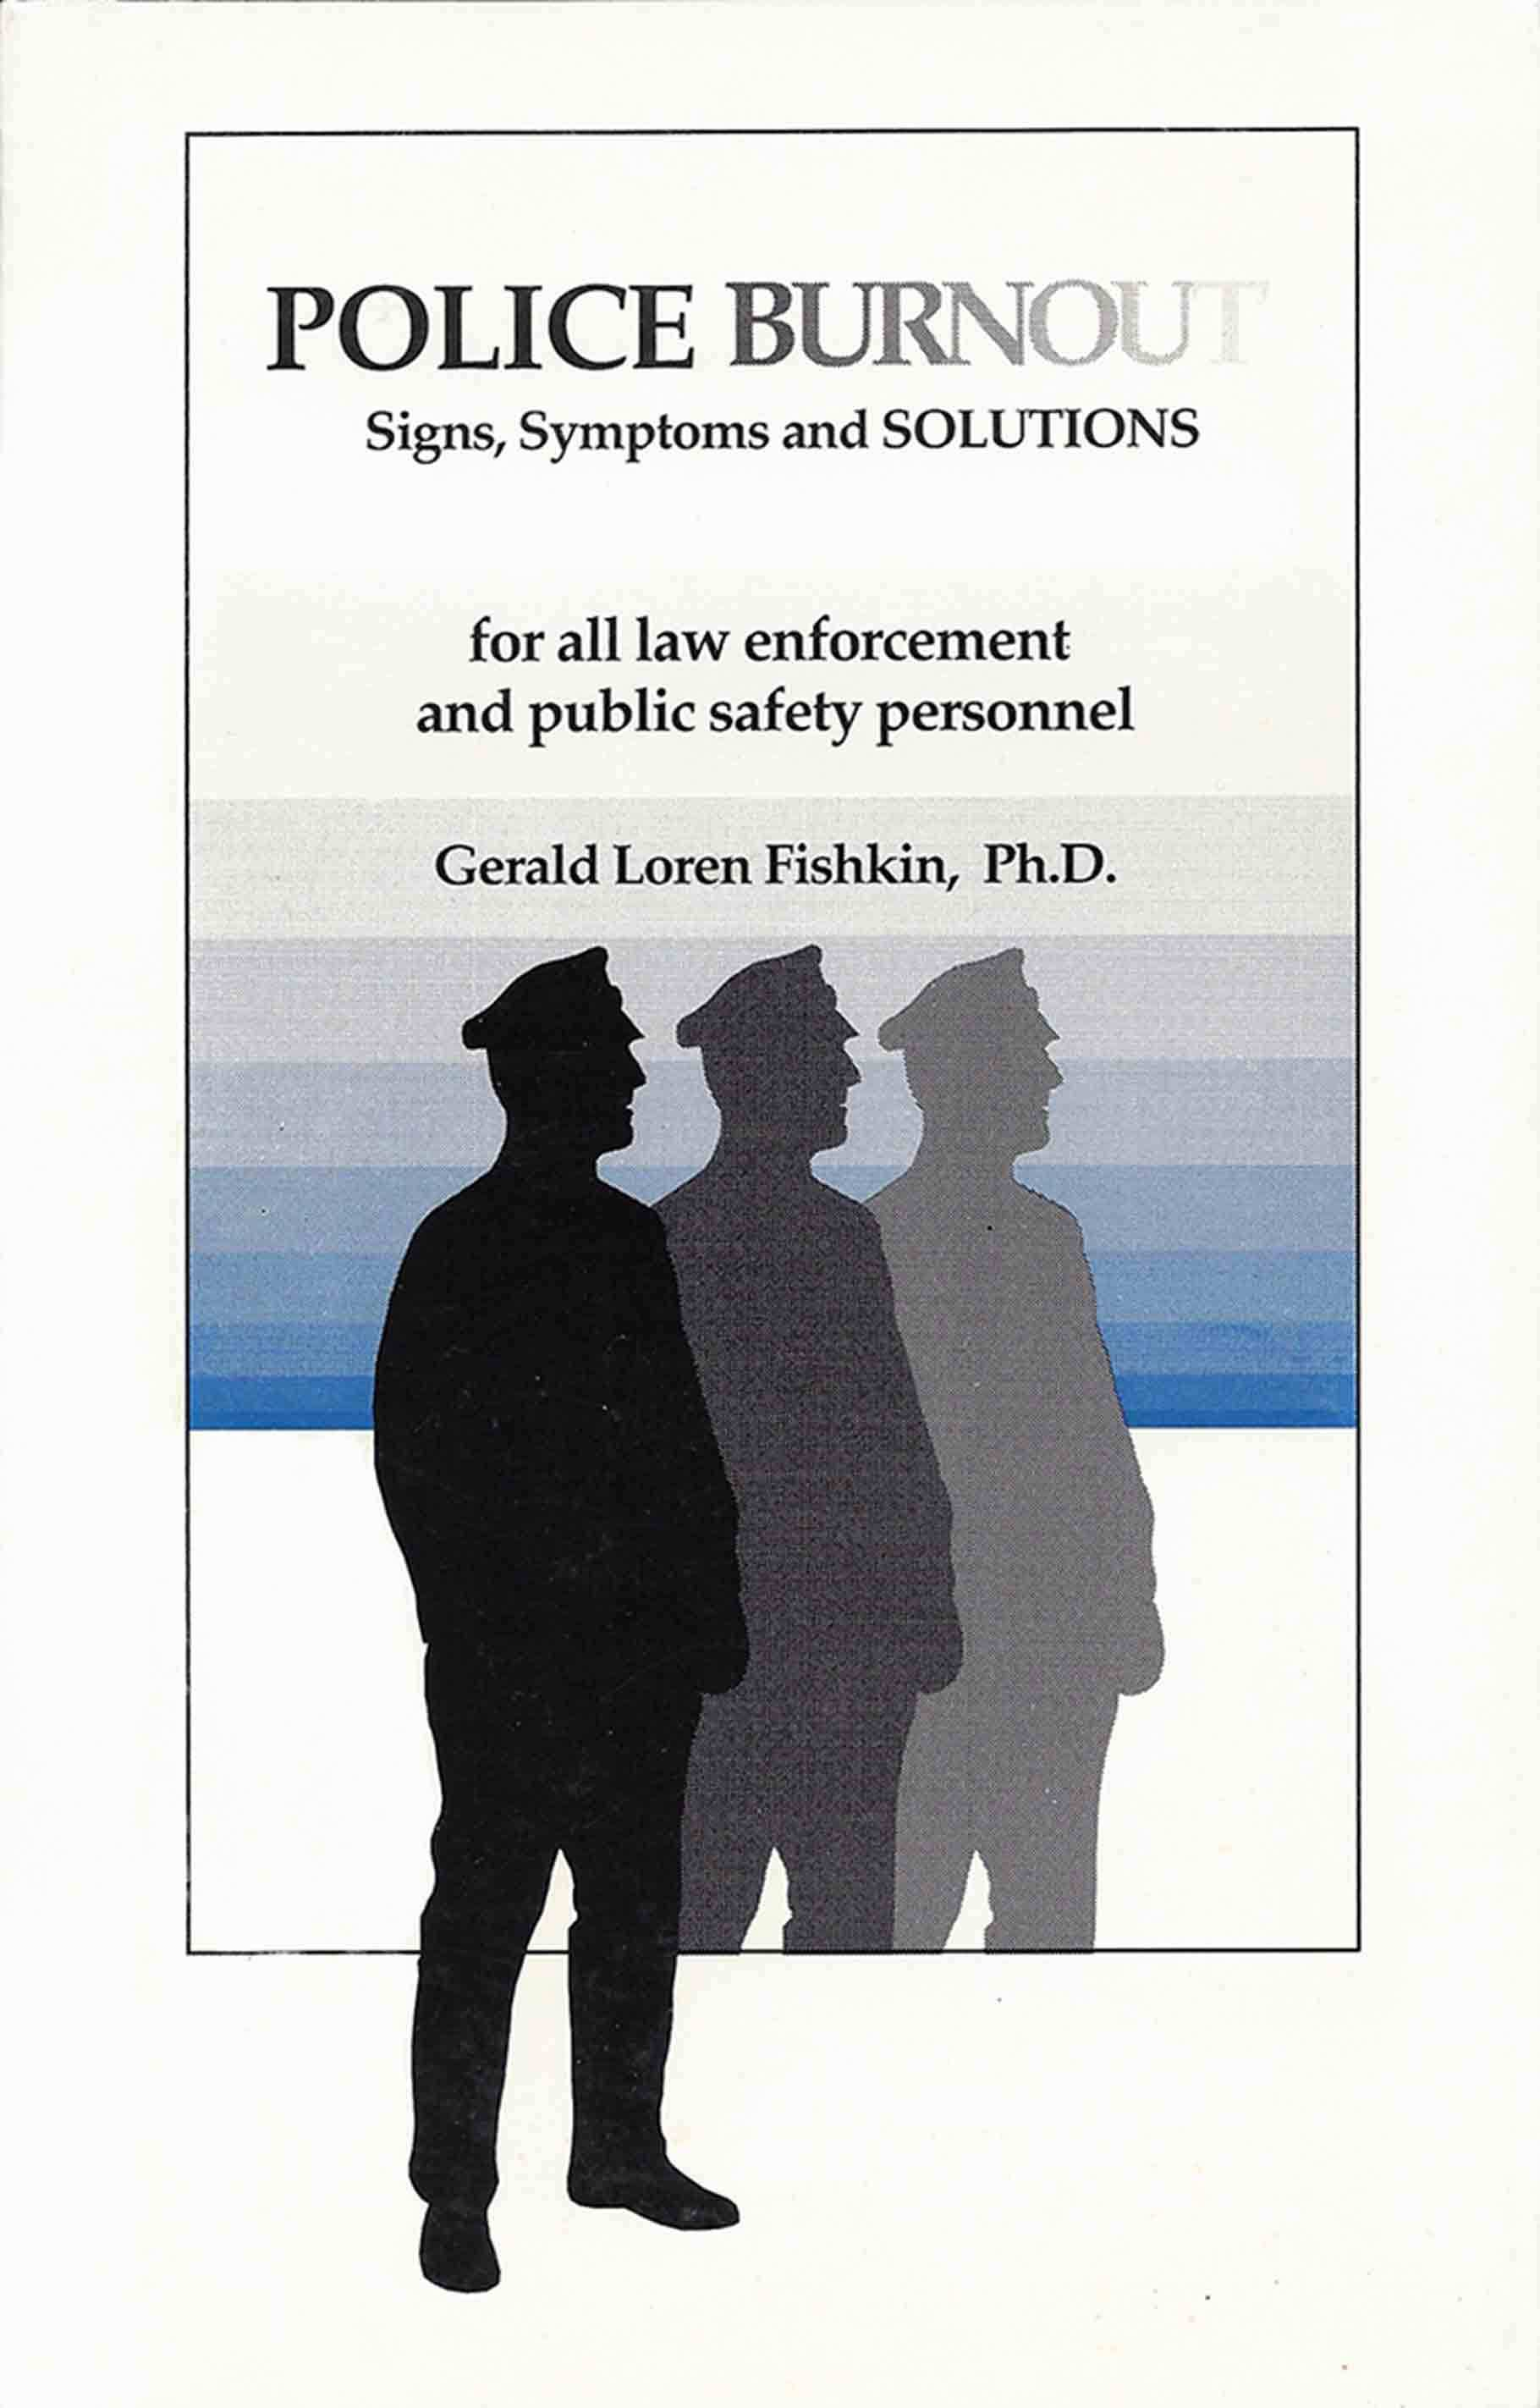 Police Burnout: Signs, Symptoms and SOLUTIONS  by  Gerald Loren Fishkin